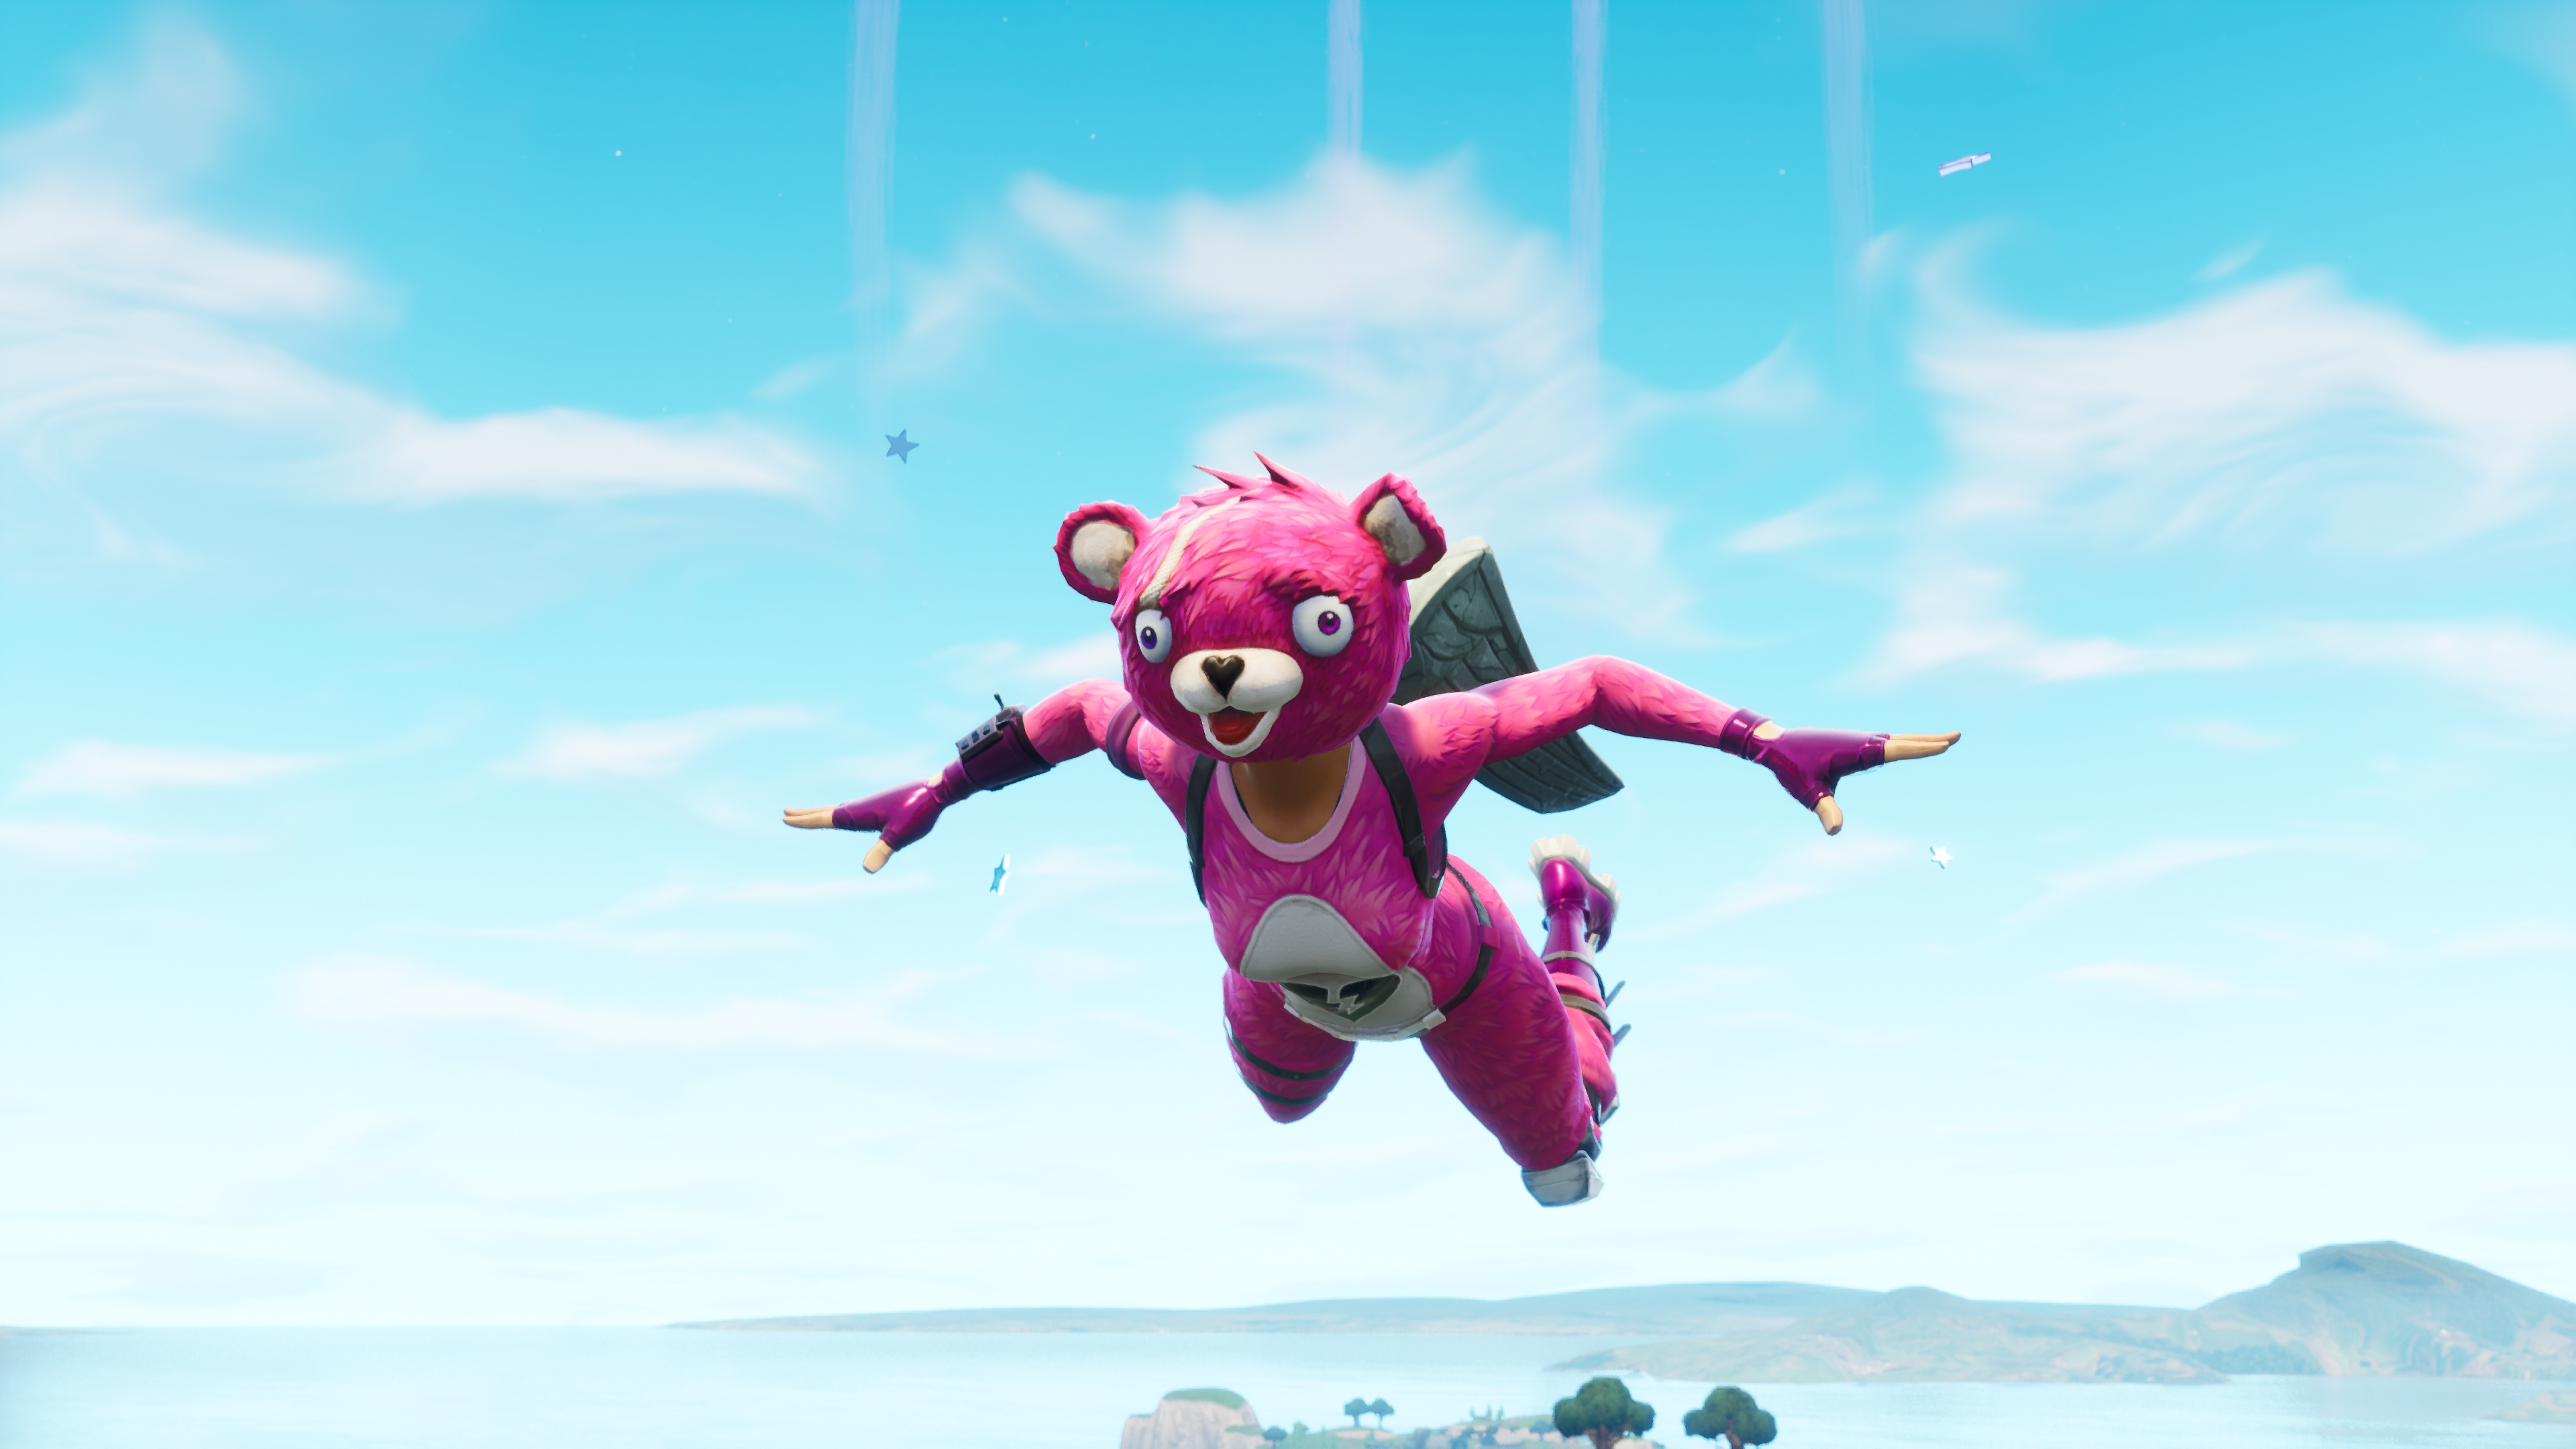 Fortnite background 70